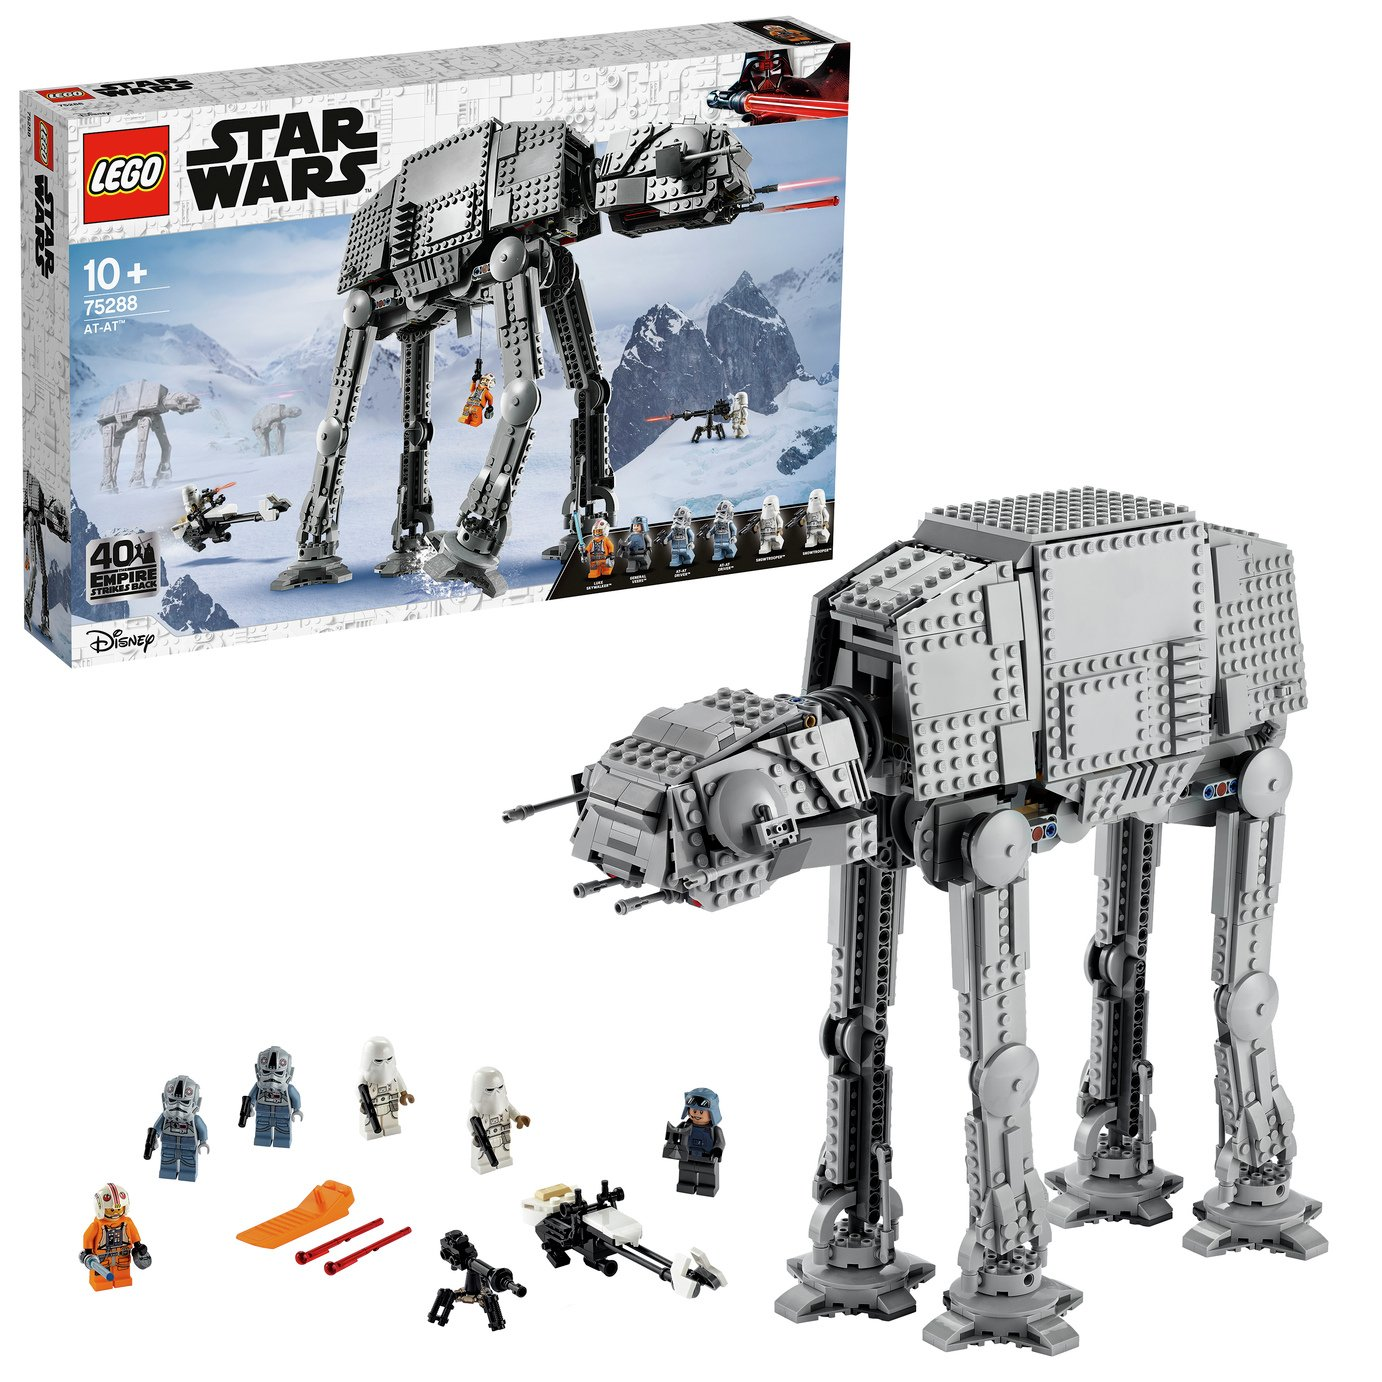 LEGO Star Wars AT-AT Walker Building Set- 75288